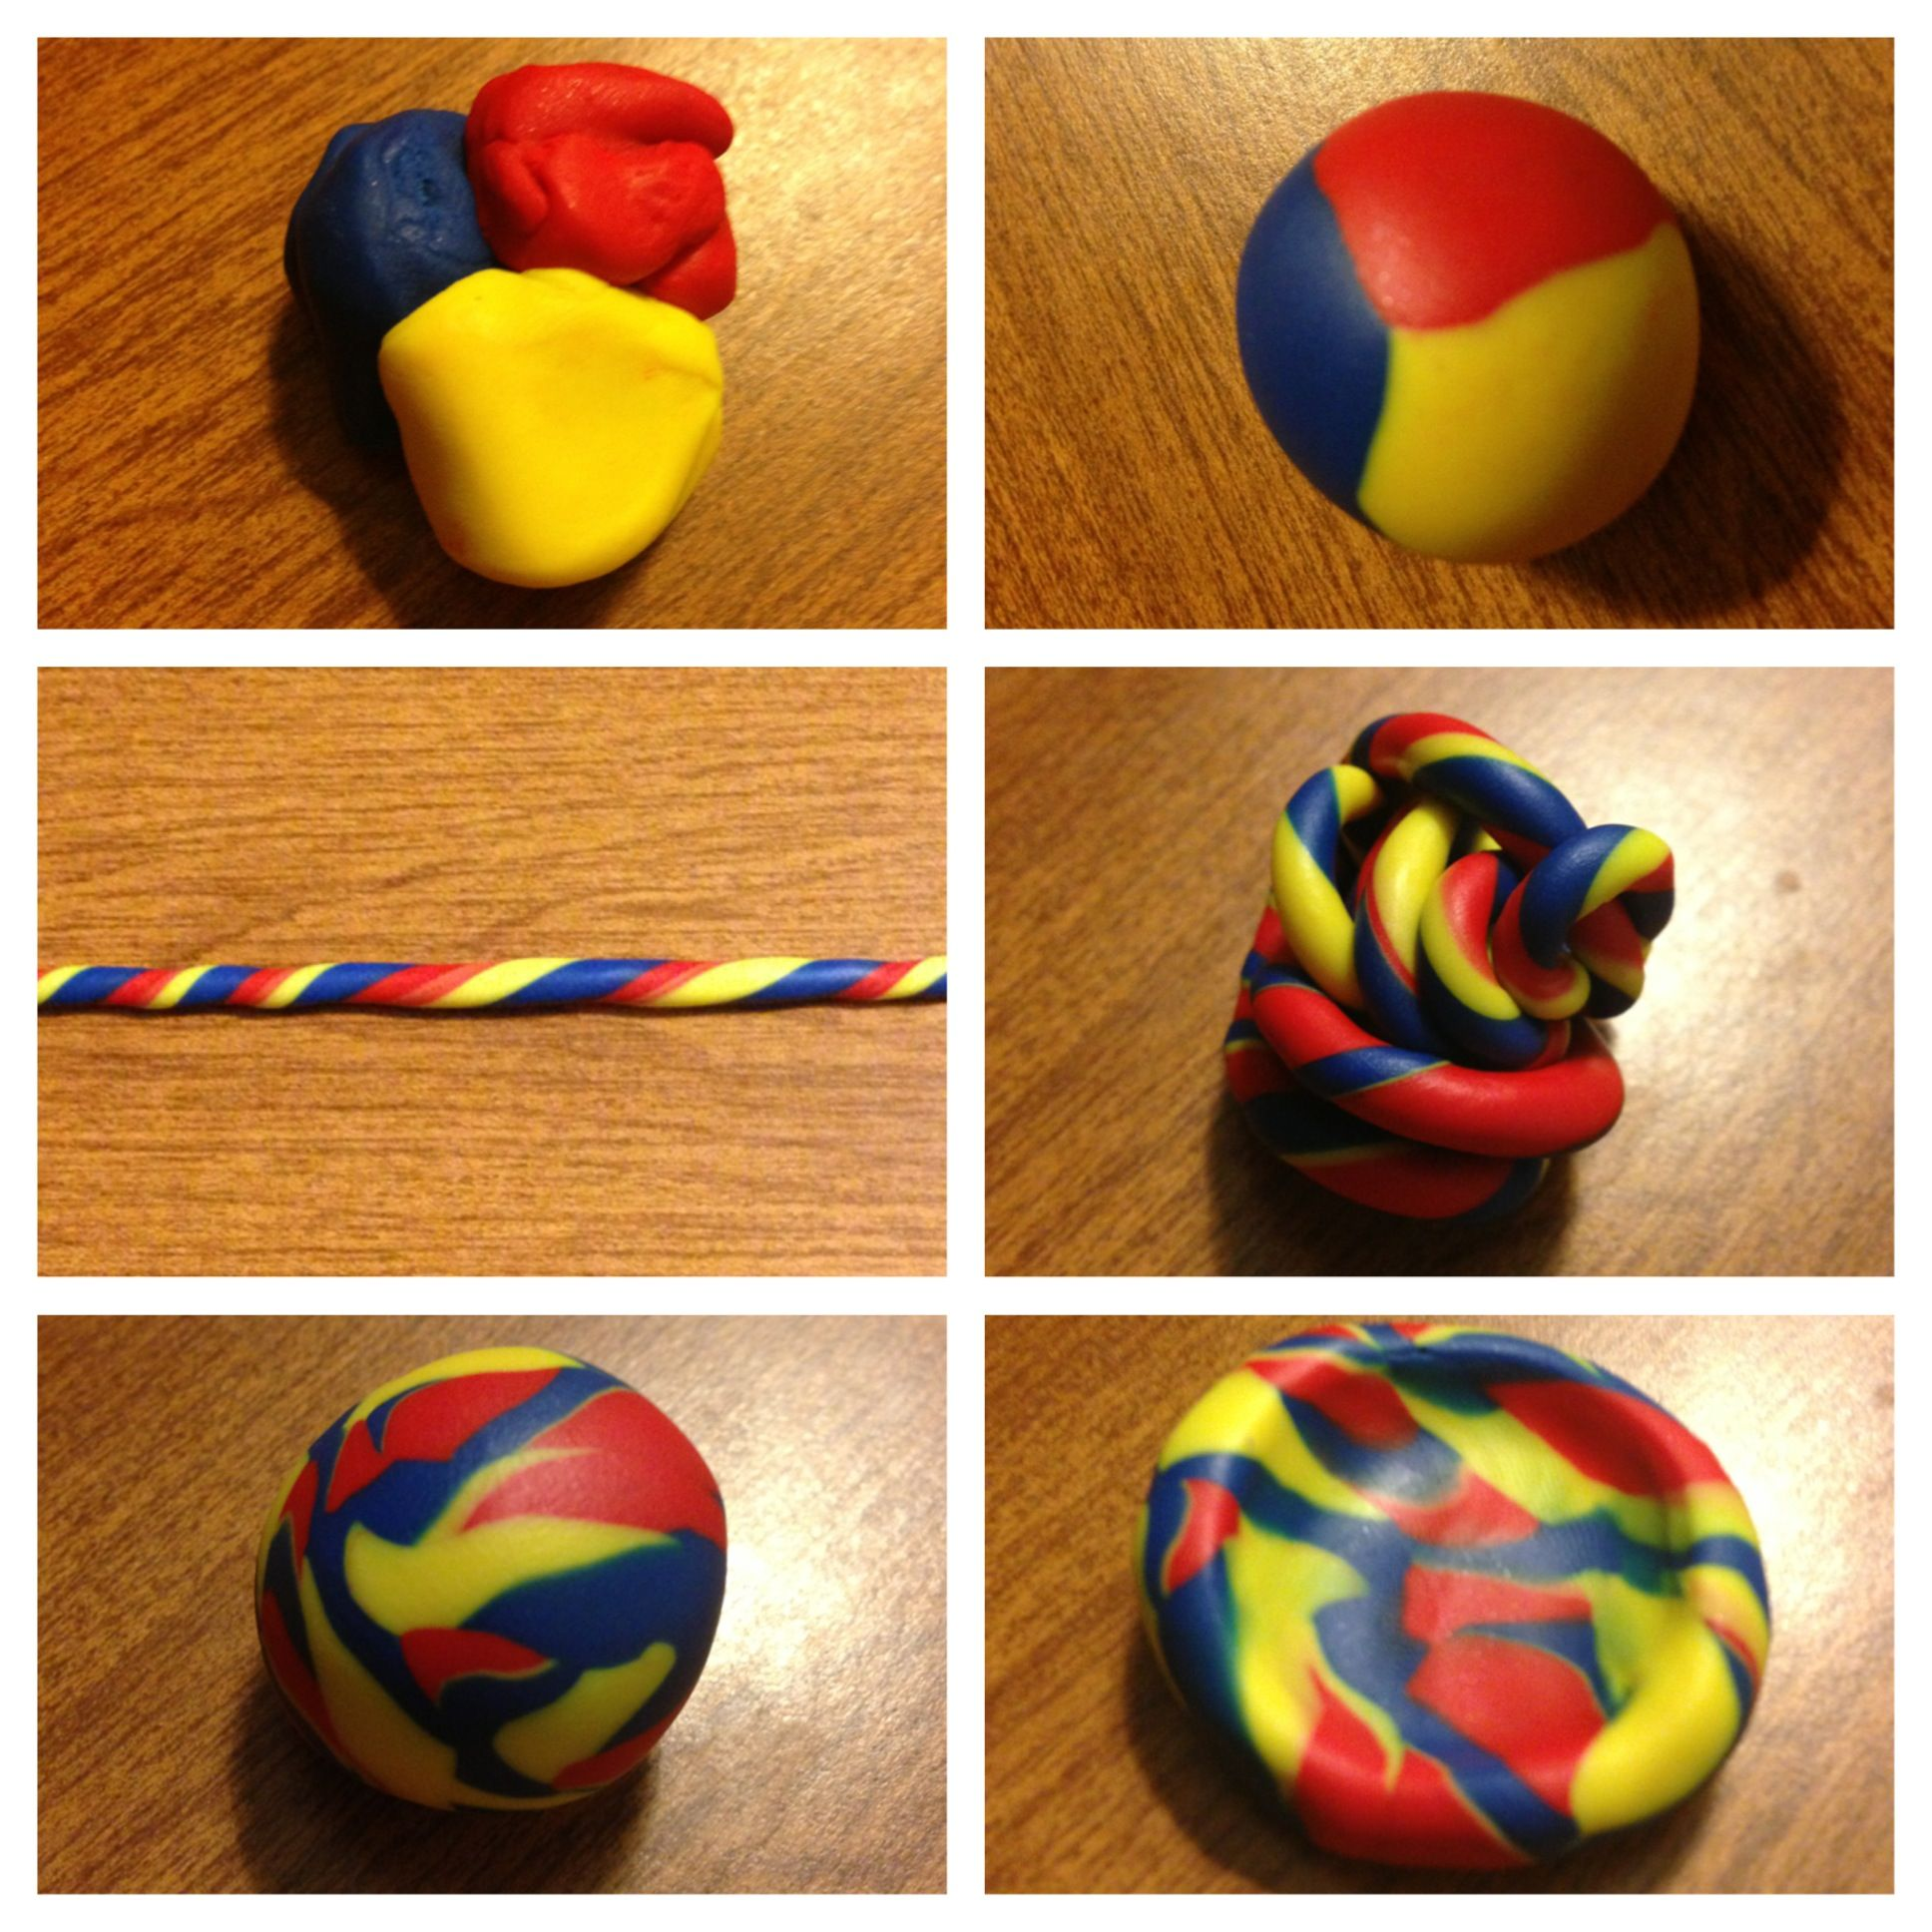 Worry Stones That Students Can Hold And Rub To Calm Down